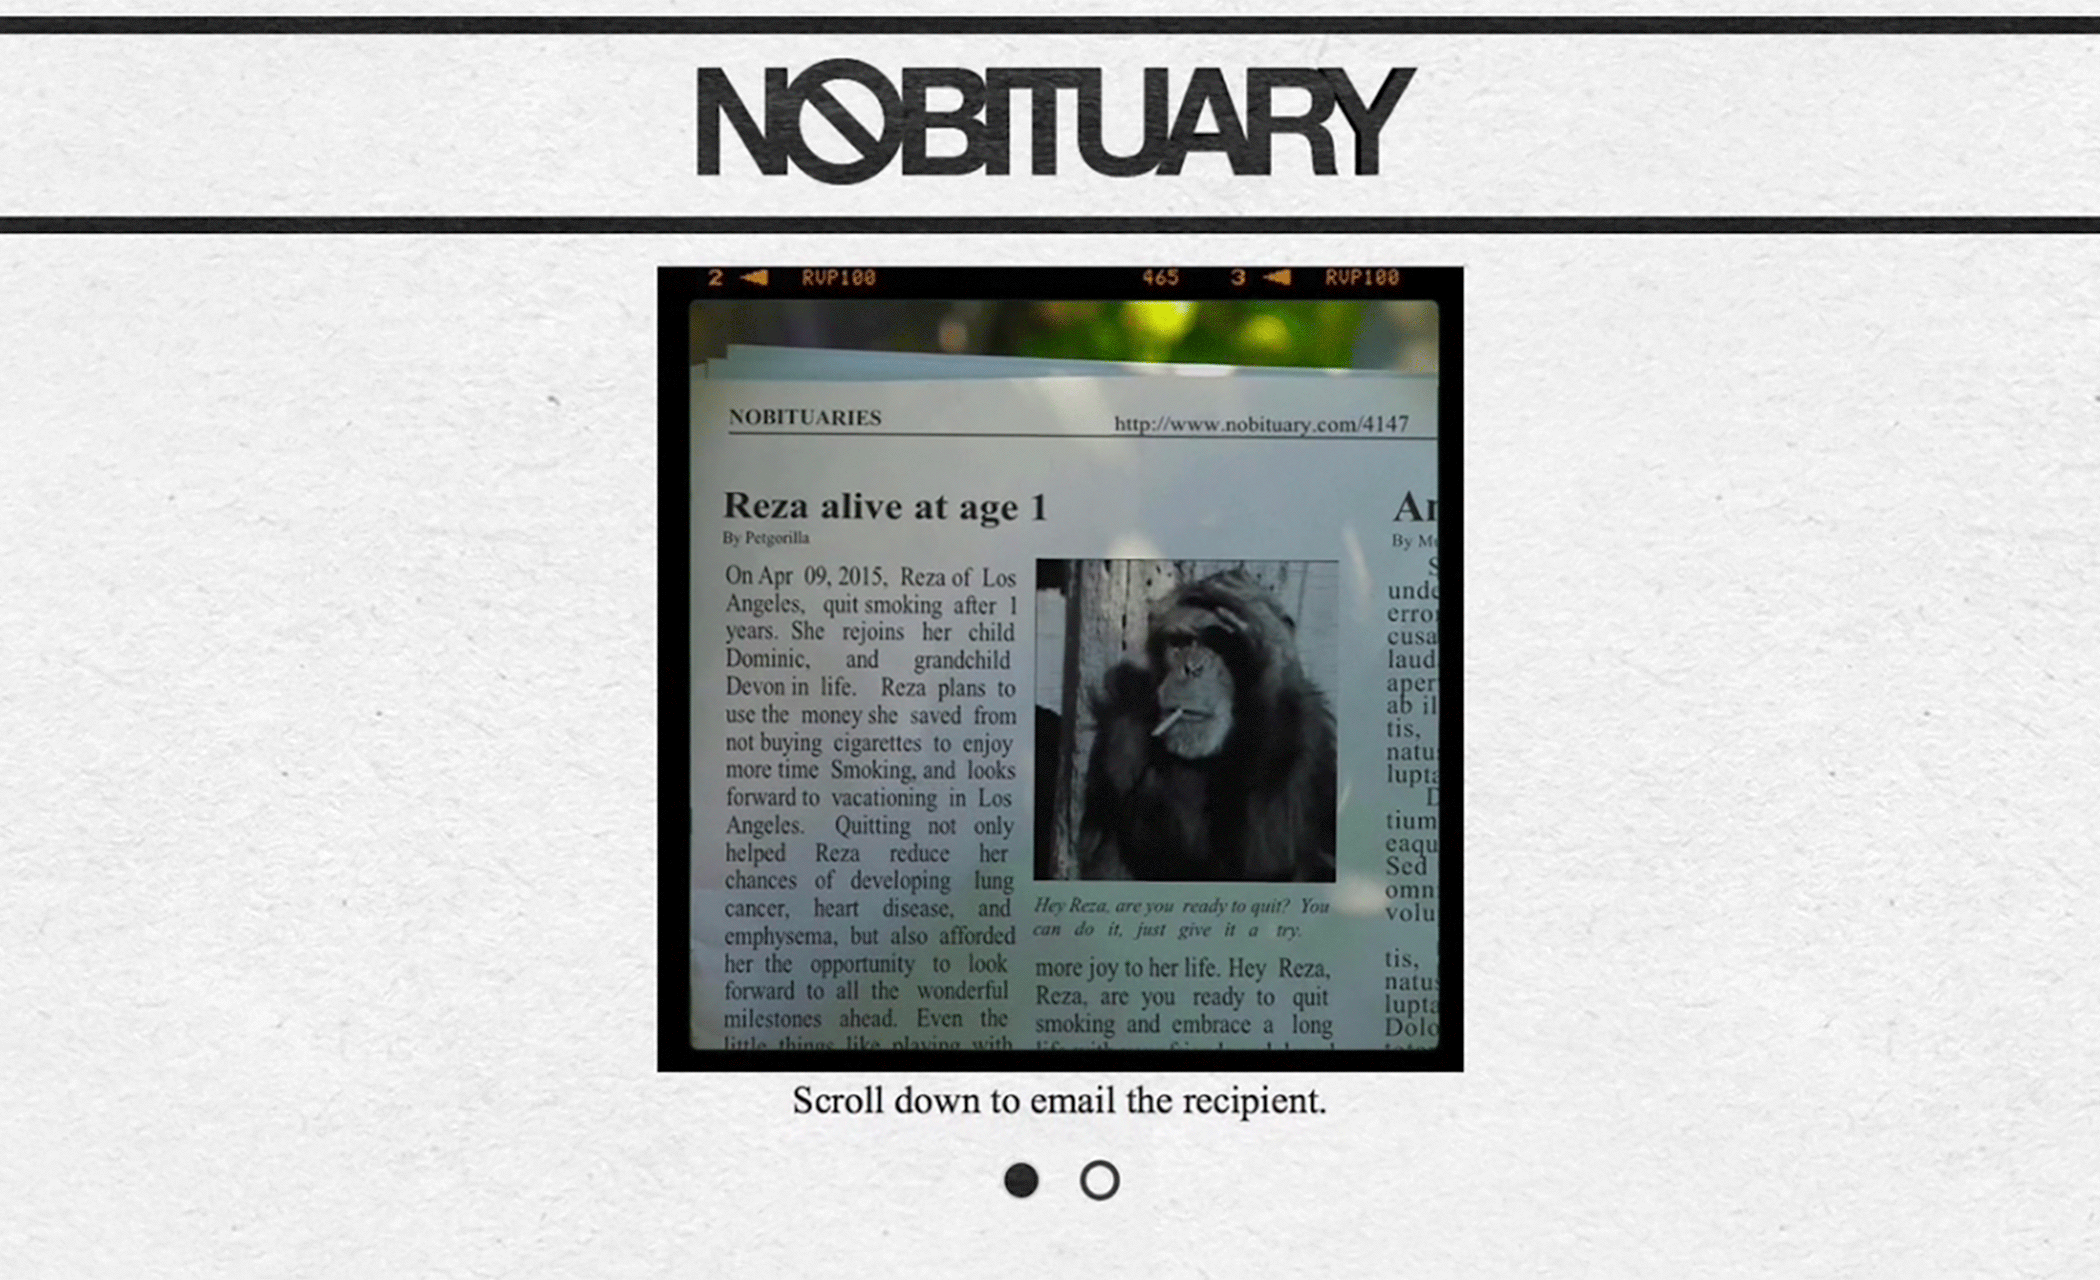 Nobituary – Anti-Smoking Campaign